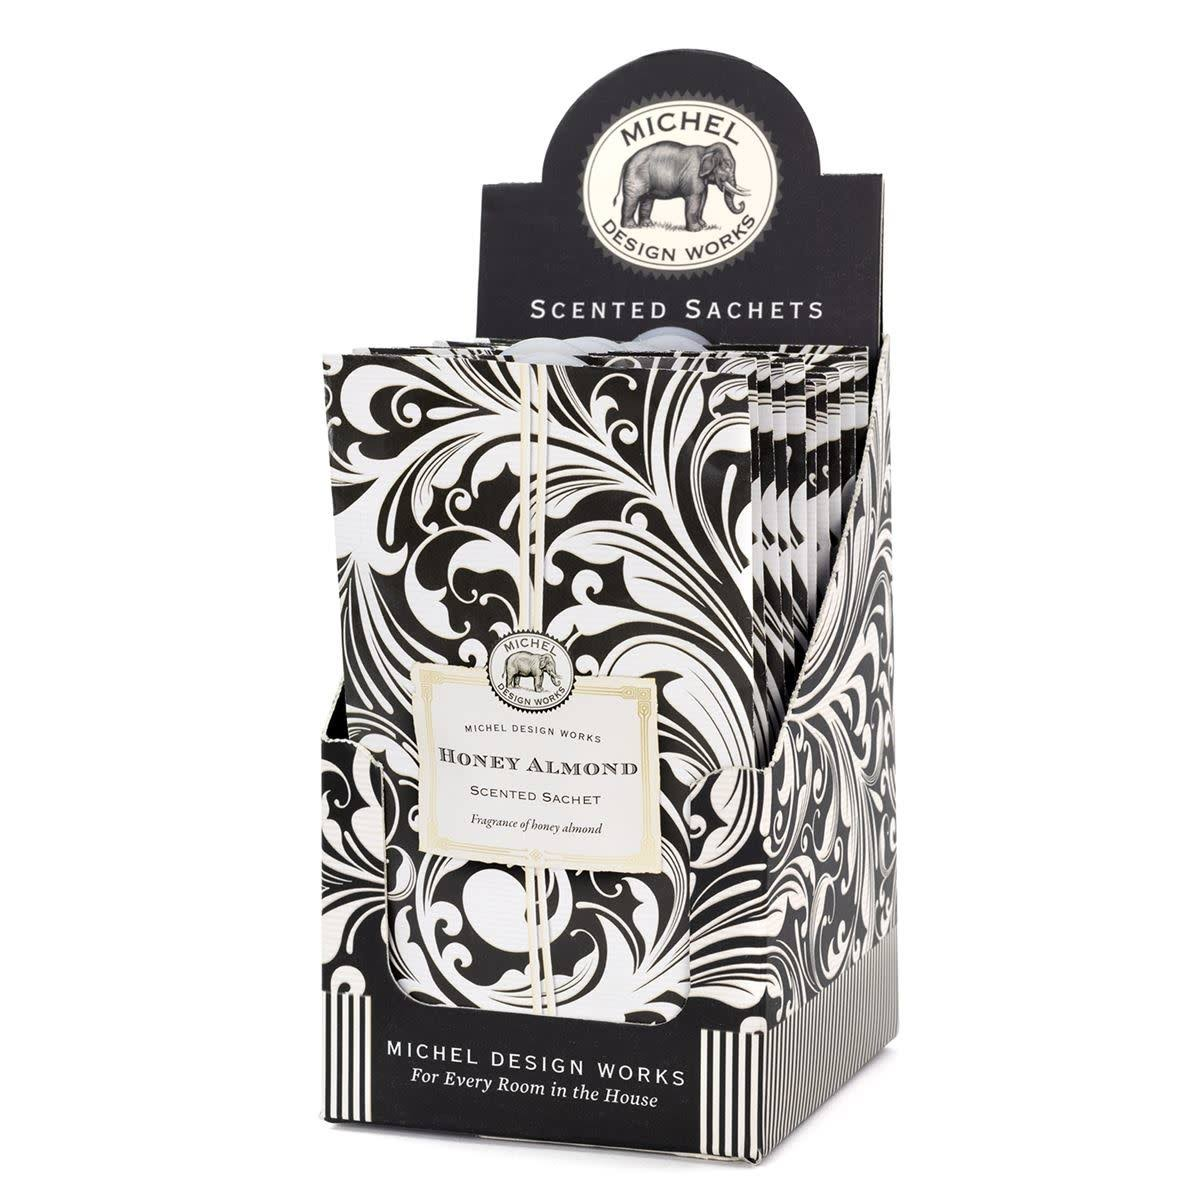 Michel Design Works Honey Almond Scented Sachet